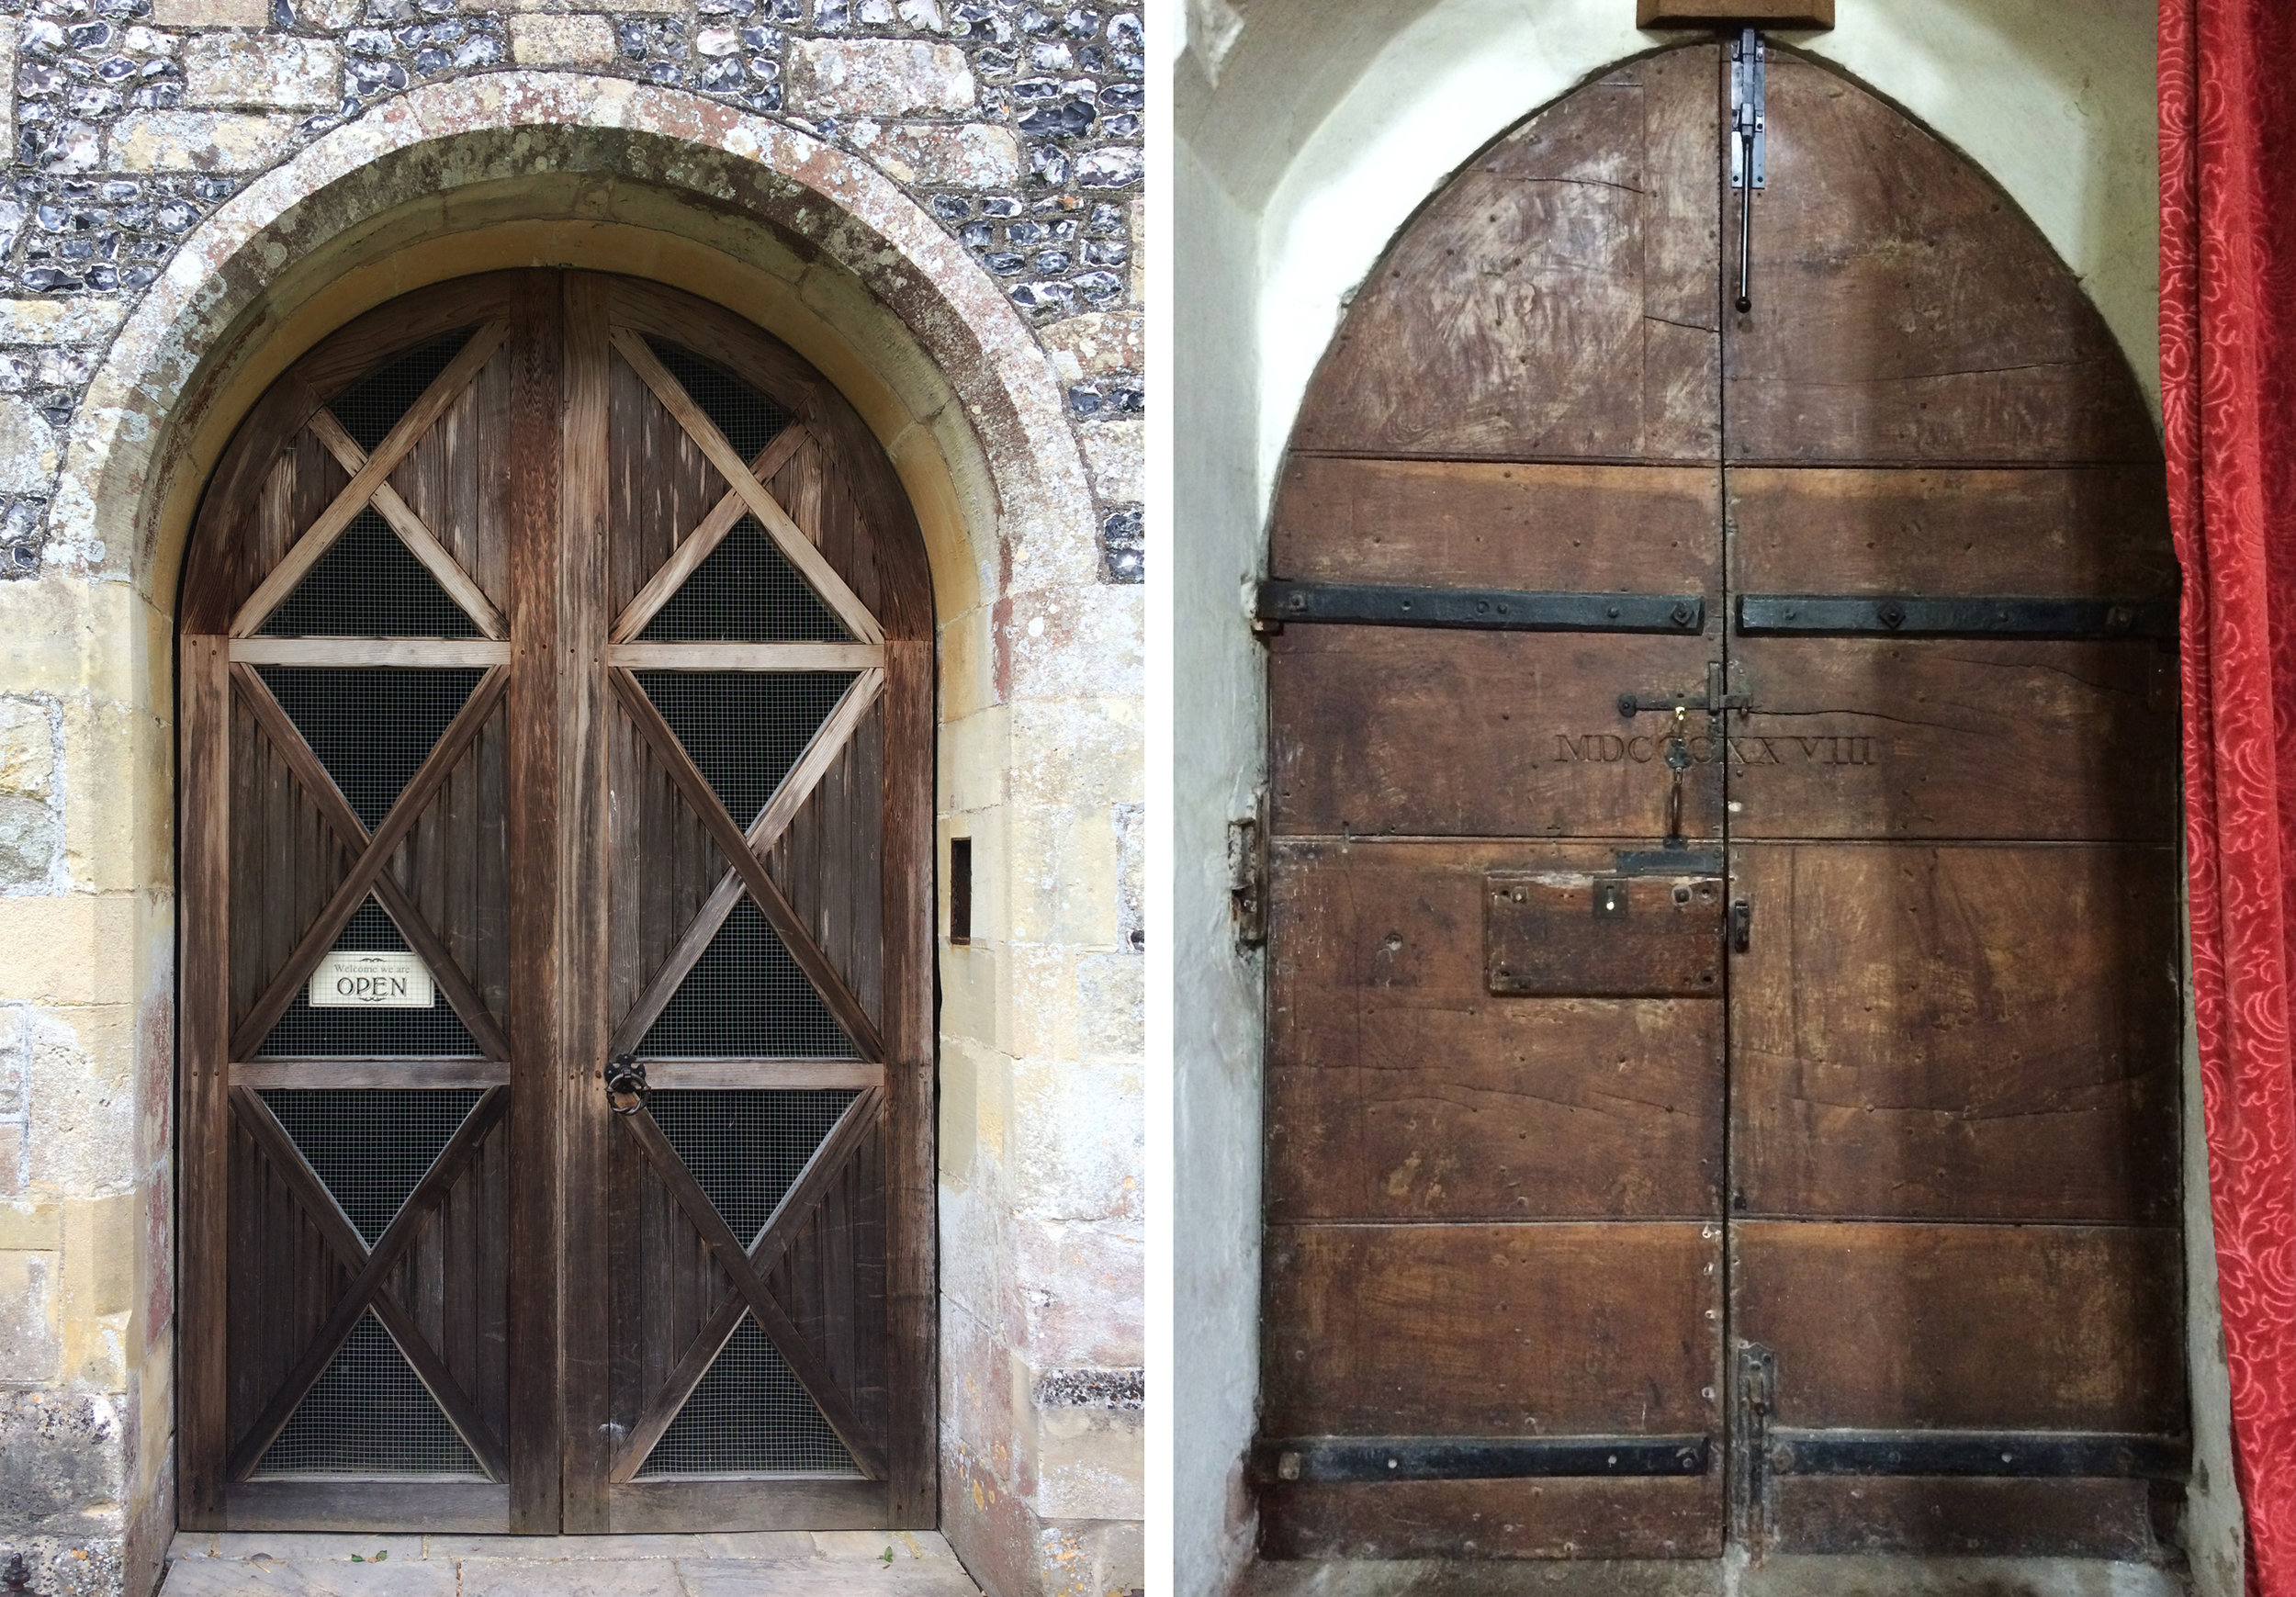 South porch doors: Left St Michael & All Angels, Figheldean:Right All Saints, Fittleton